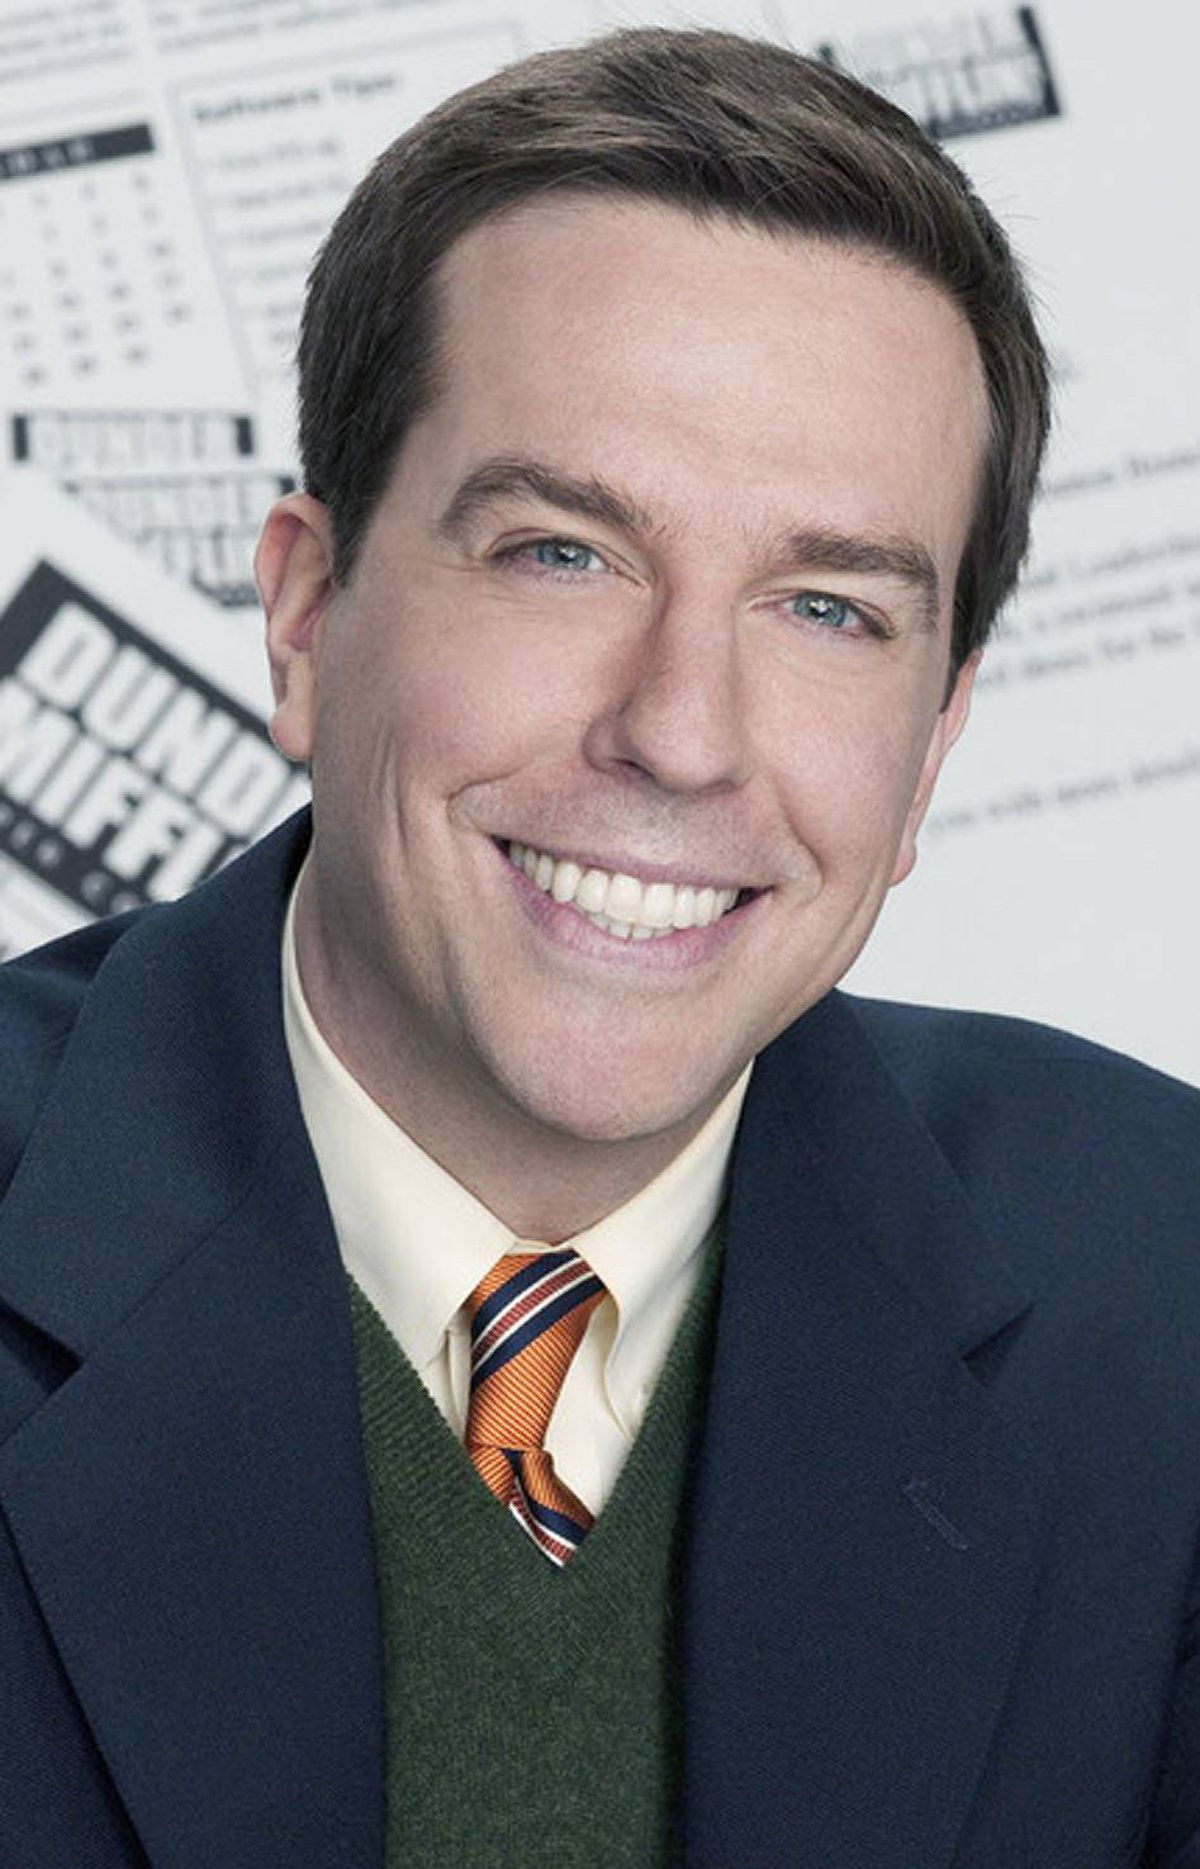 """COMEDY The Office Global, 8:30 p.m.; NBC, 9 p.m. ET/PT Still holding a faithful viewer following each Thursday night, this workplace comedy shifts the spotlight tonight to the character of Andy, played by Ed Helms. Boldly announcing a """"life-altering decision,"""" Andy abruptly abandons his post and drives across the country to finally declare his romantic intentions toward Erin (Ellie Kemper). In his absence, the scheming Nellie (Catherine Tate) shows up at Dunder-Mifflin in pursuit of his coveted manager position. Big mistake, lady."""